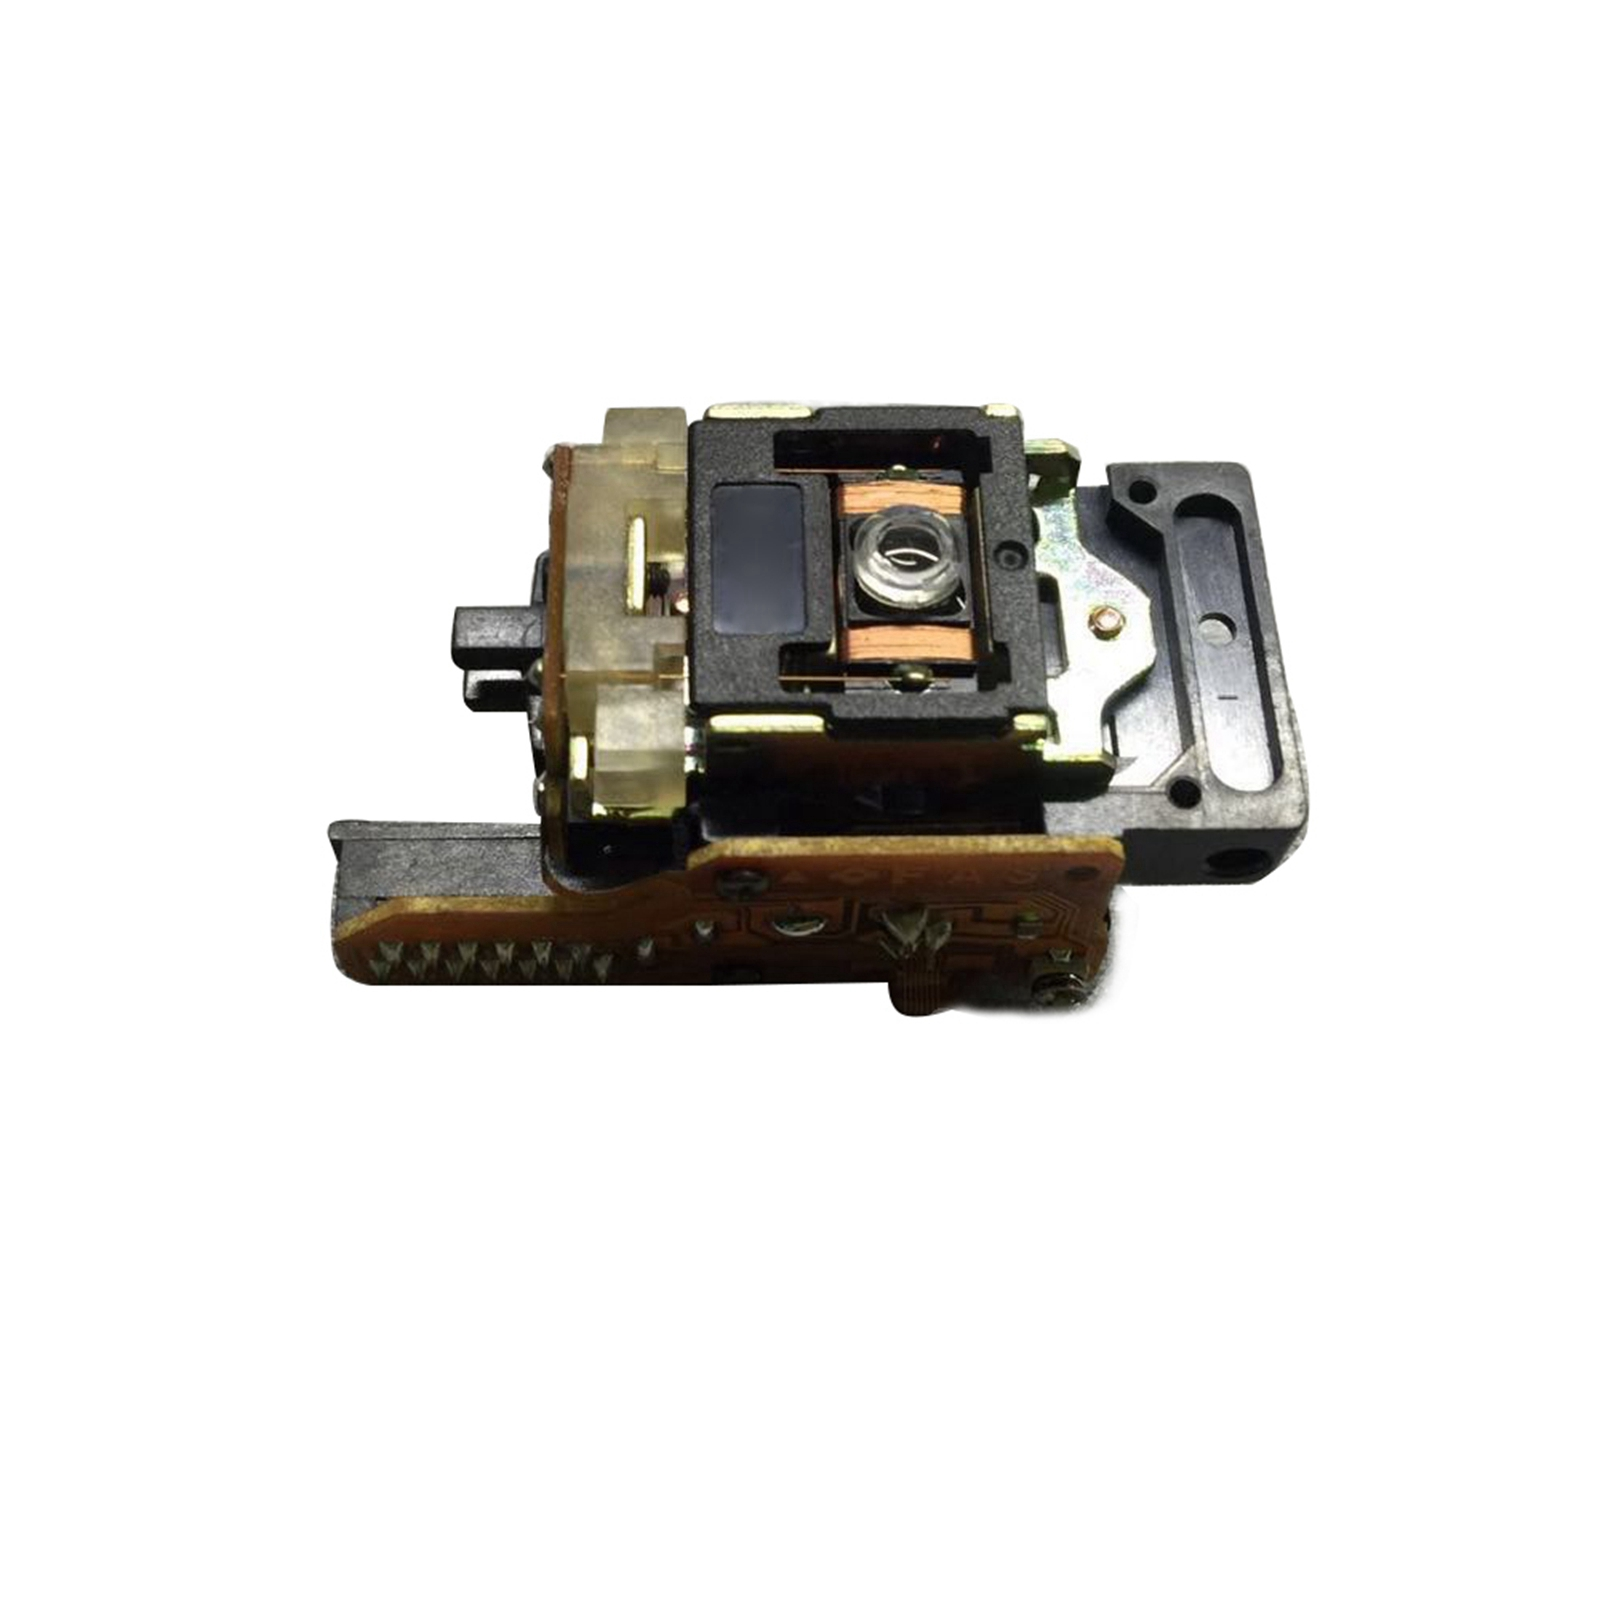 New DX-7711DX-7911C-725C-729 Laser Lens Optical Pick-up SF-P100 13P For Sanyo CD Player Complete Mechanism Laser Head